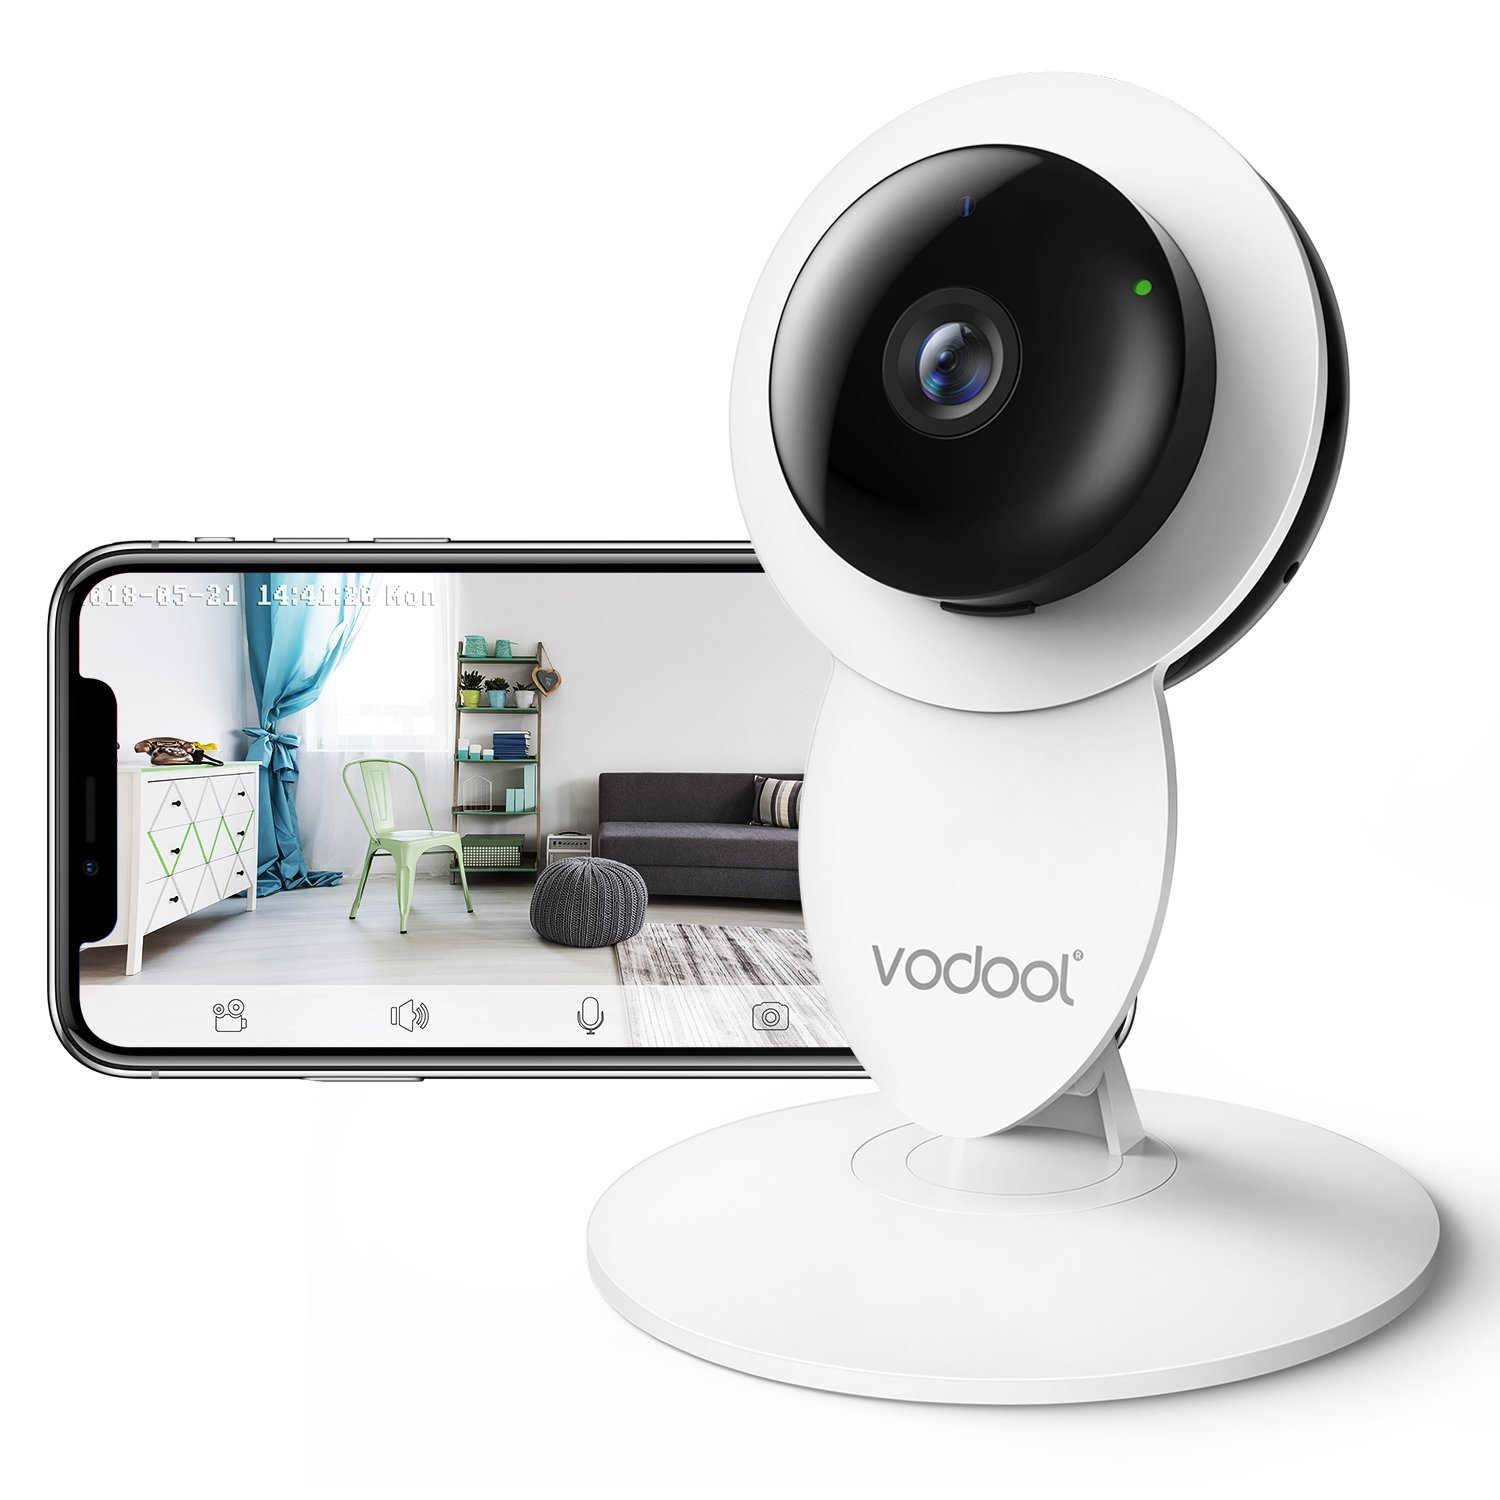 Vodool 1080p Home Camera, Indoor IP Surveillance Home Security Camera System Night Vision, Wireless Wi-Fi Remote Monitor iOS & Android App, Clear Two-Way Audio, Motion Detection Alert (White) by vodool